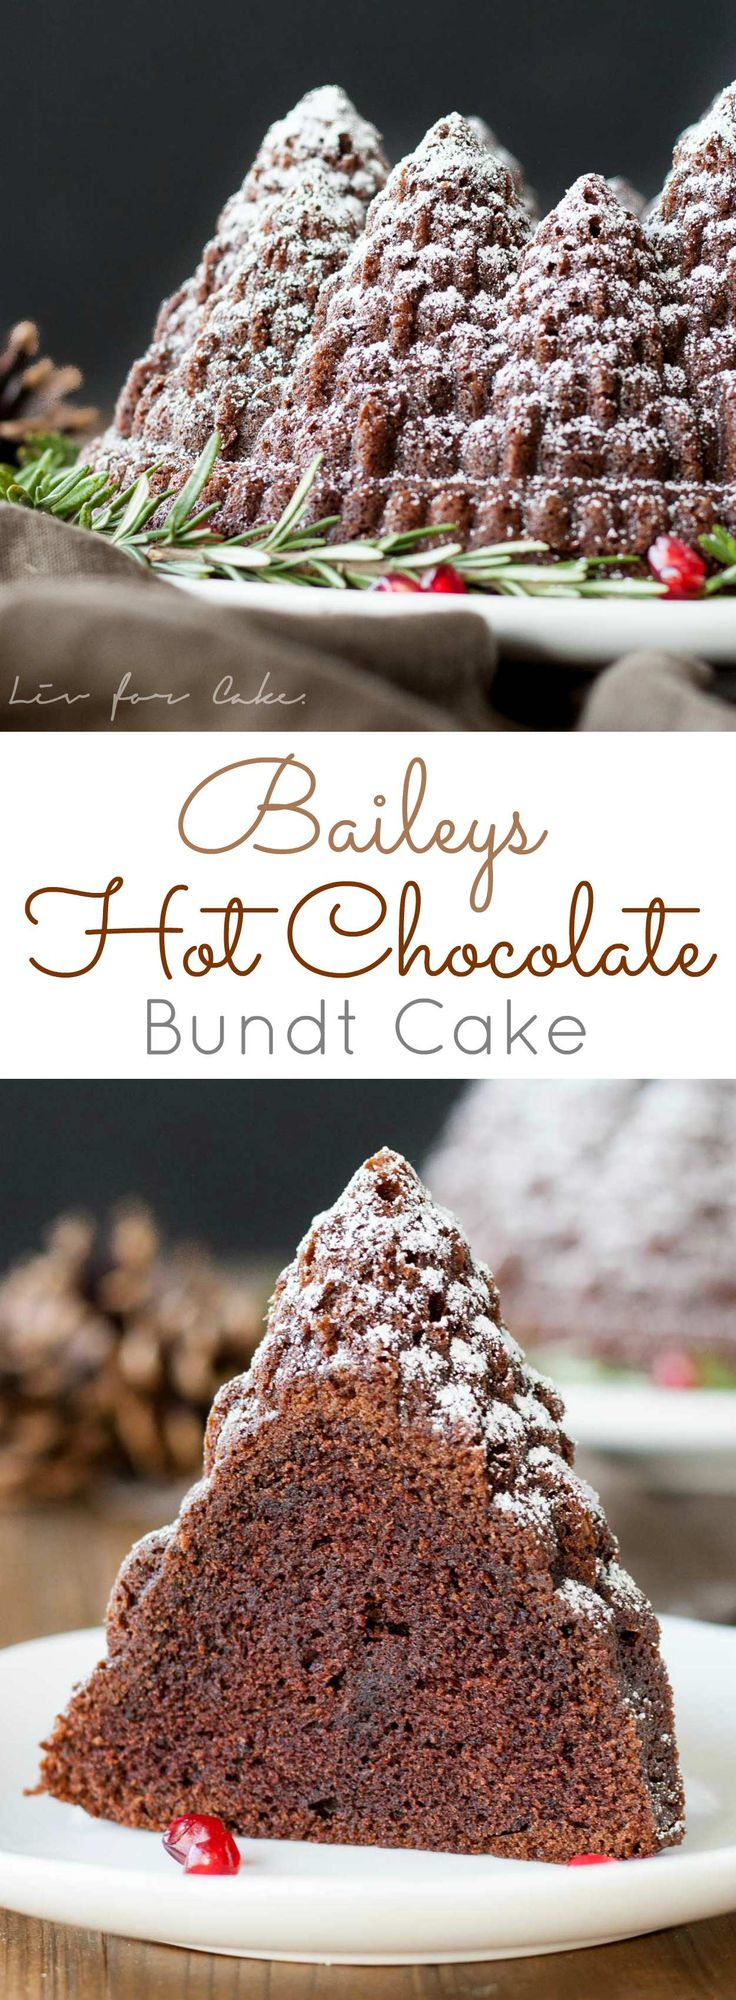 This rich chocolate cake is kicked up a notch with the delicious flavour of Baileys Irish Cream. | livforcake.com #HolidayBaking